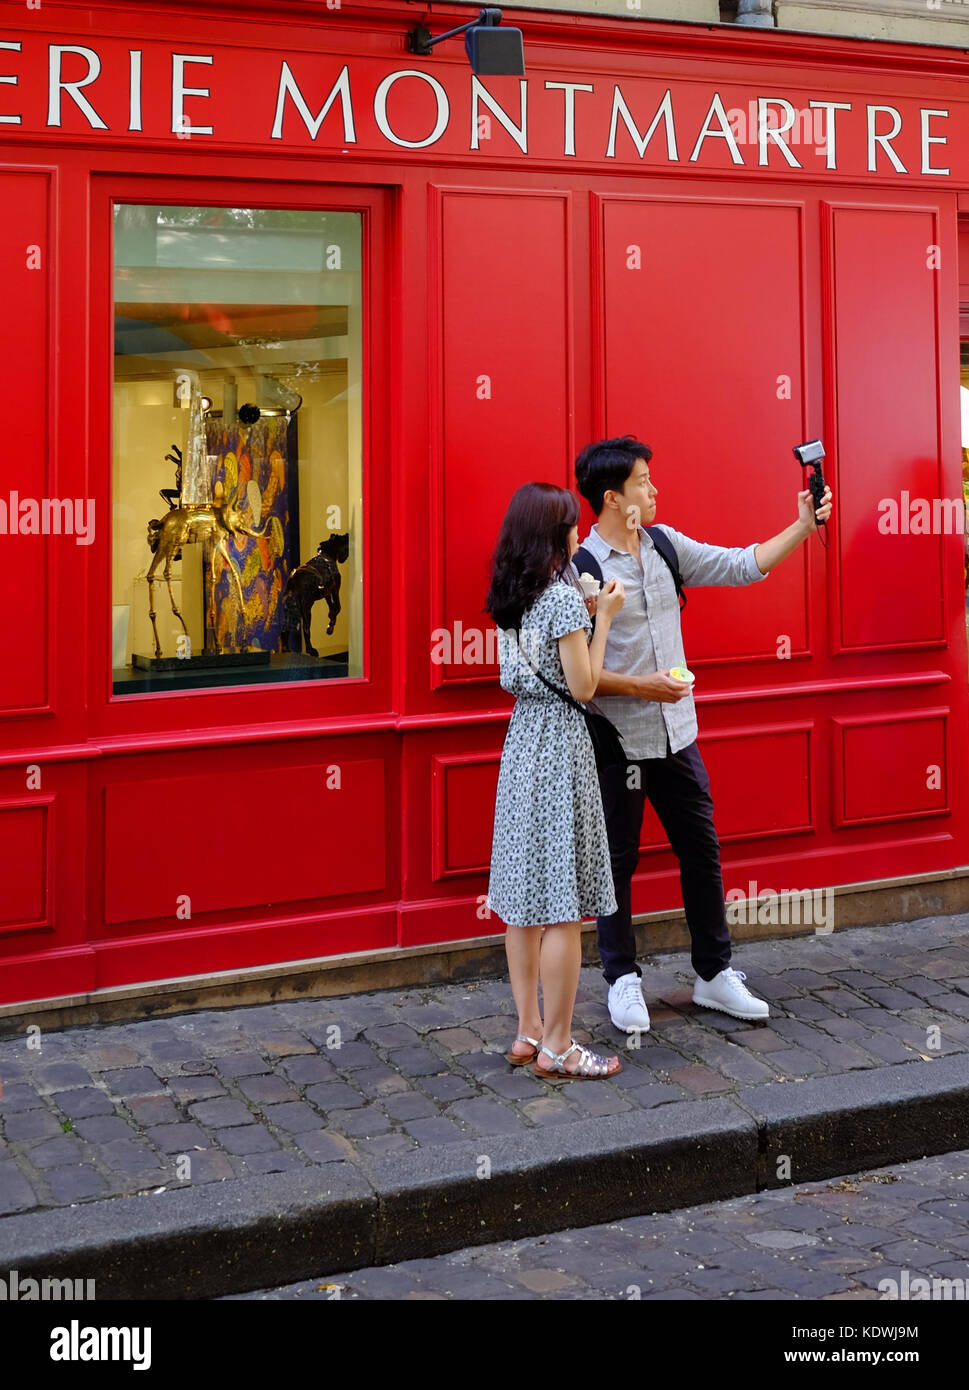 A young tourist couple take a selfie or shoot video using their gopro camera in Montmartre, Paris Stock Photo